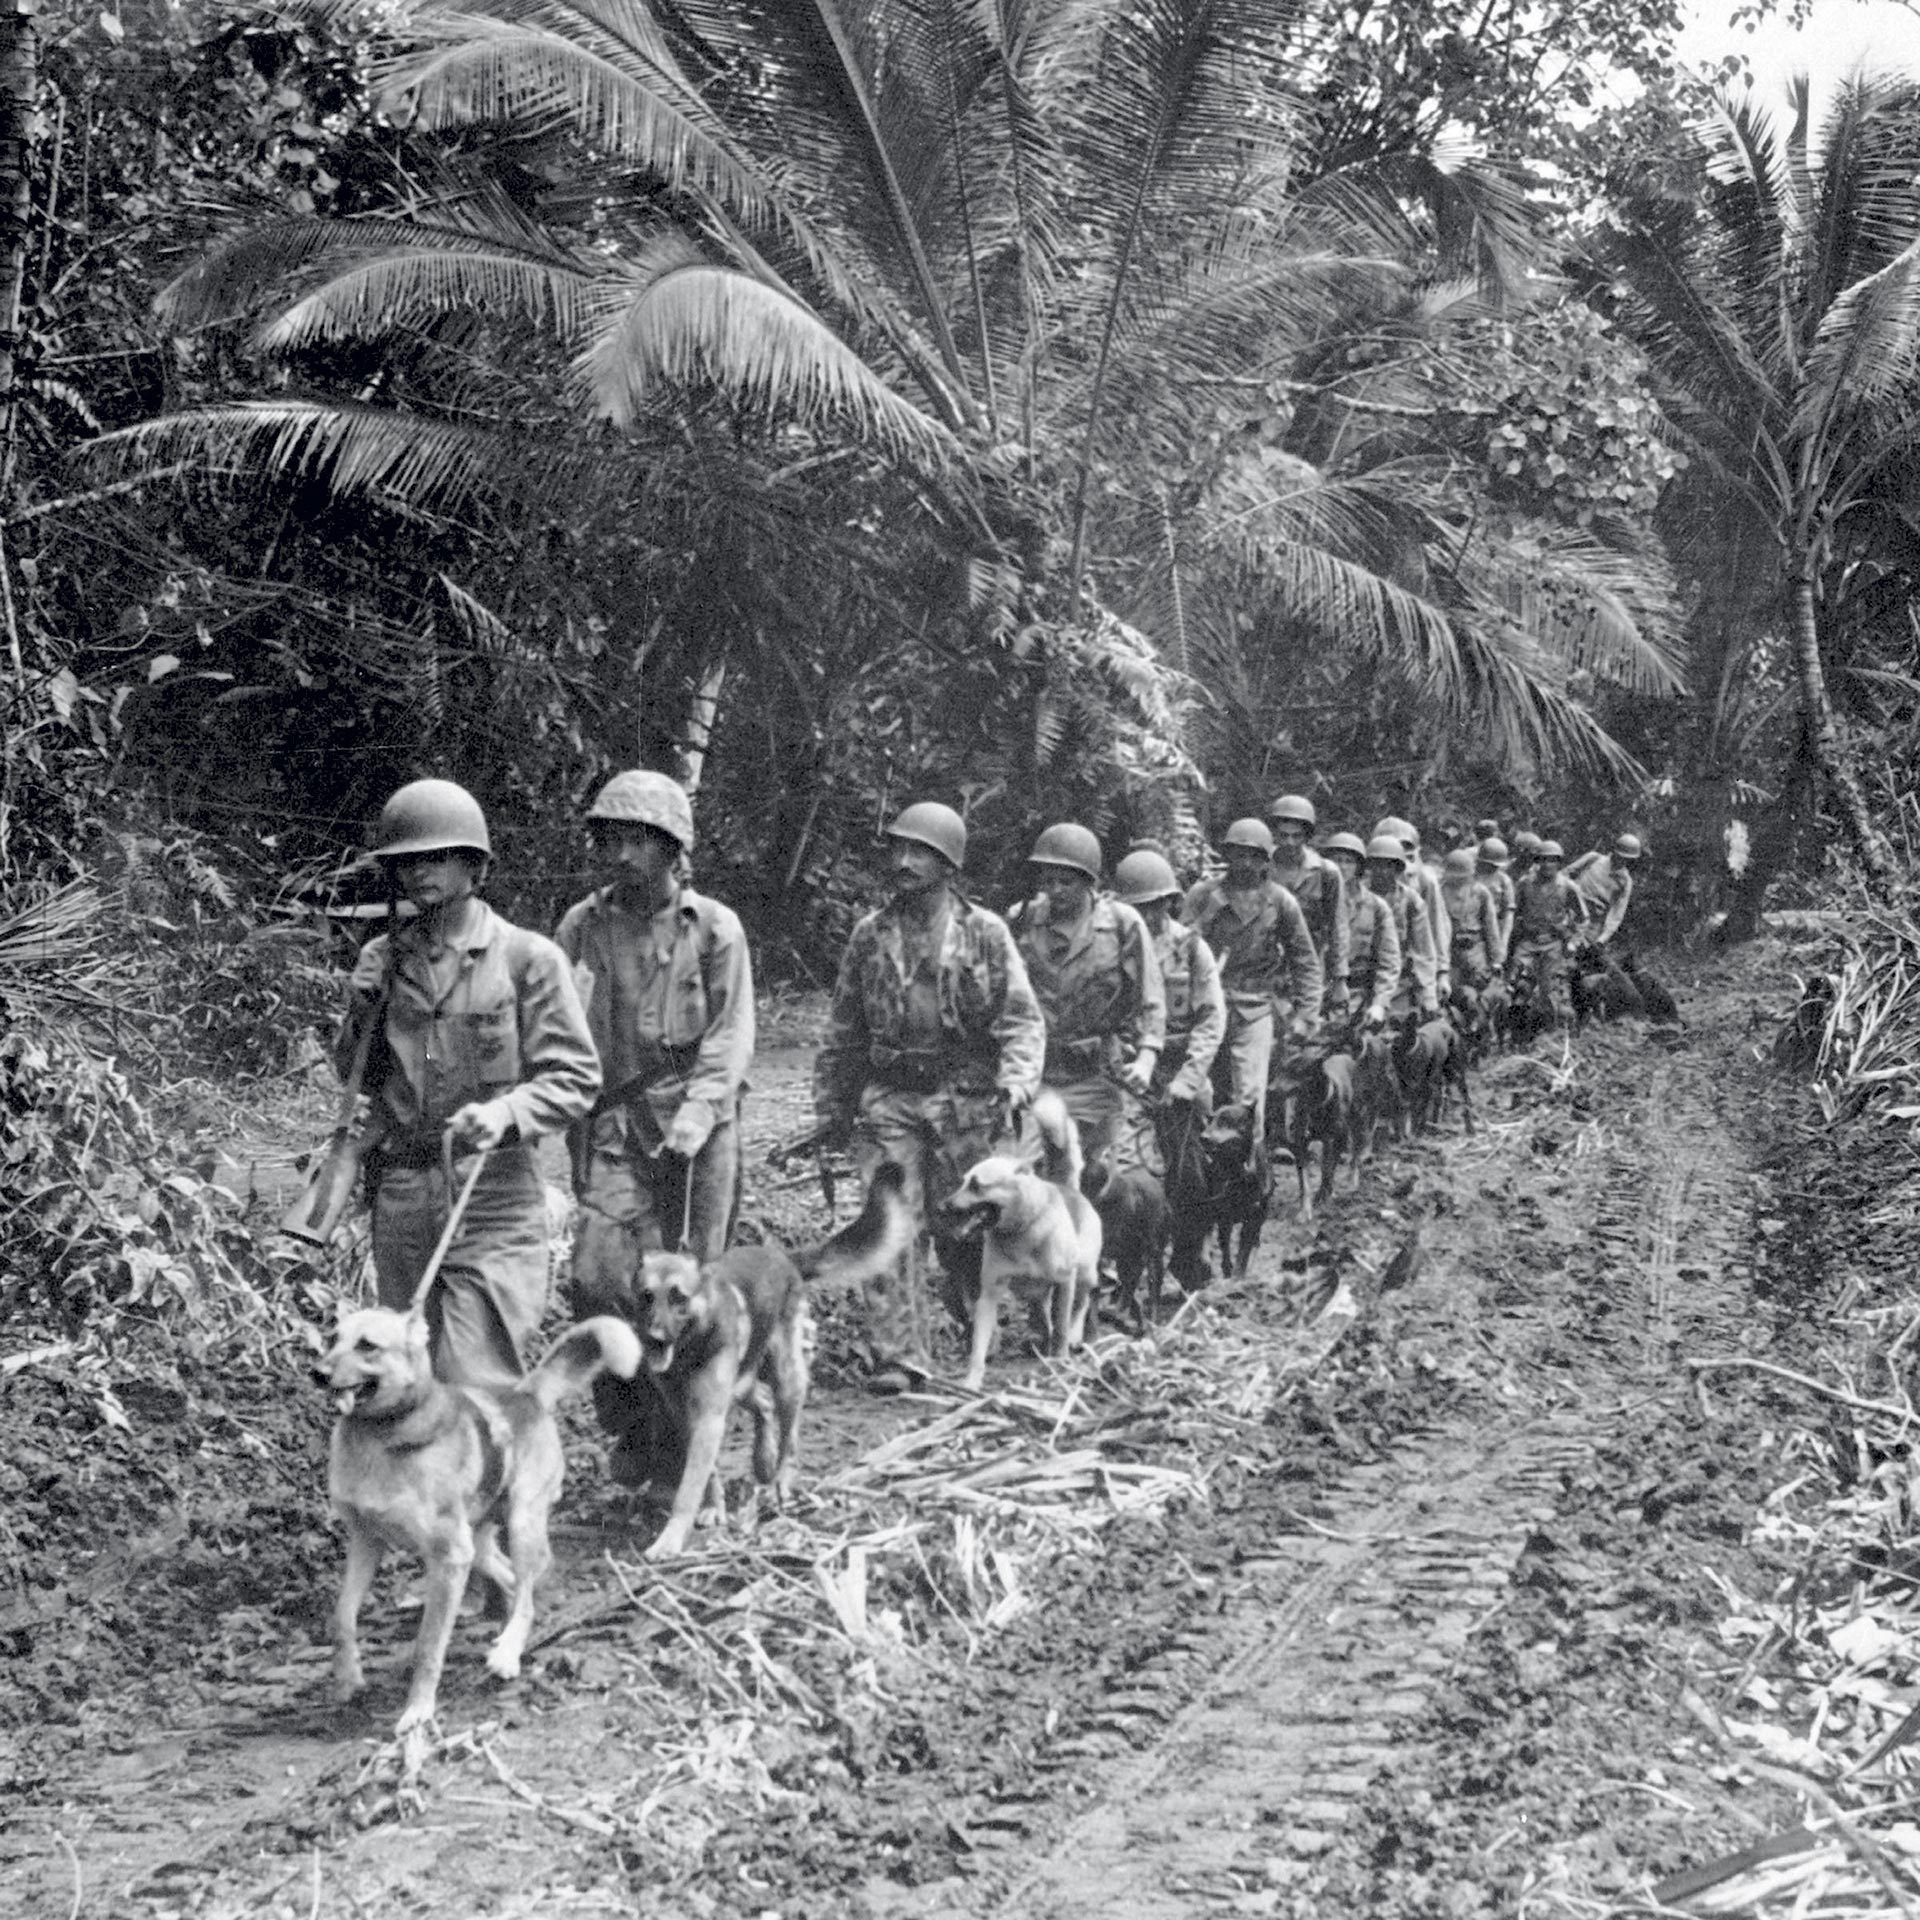 marines and dogs patrolling a trail